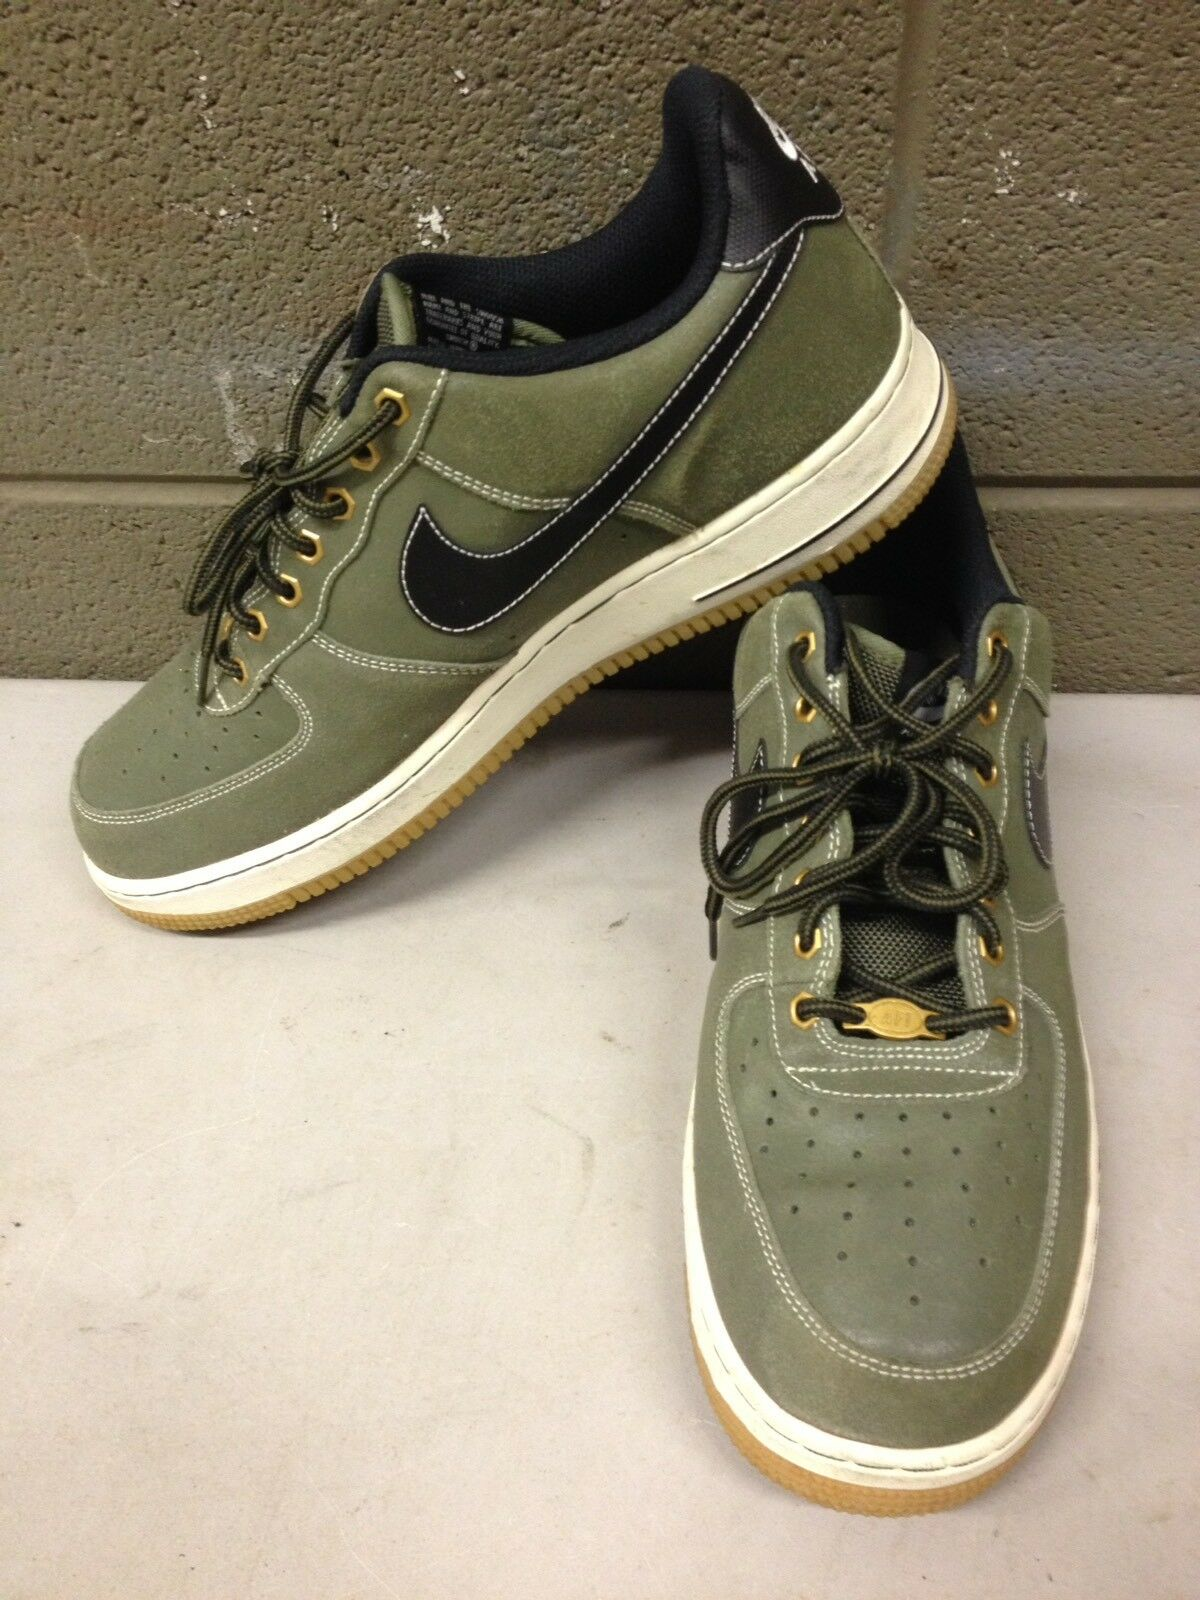 Nike Air Force 1 Low WorkBoot Pack Medium Olive 488298-206 Men's Size 11 (ddrc5)